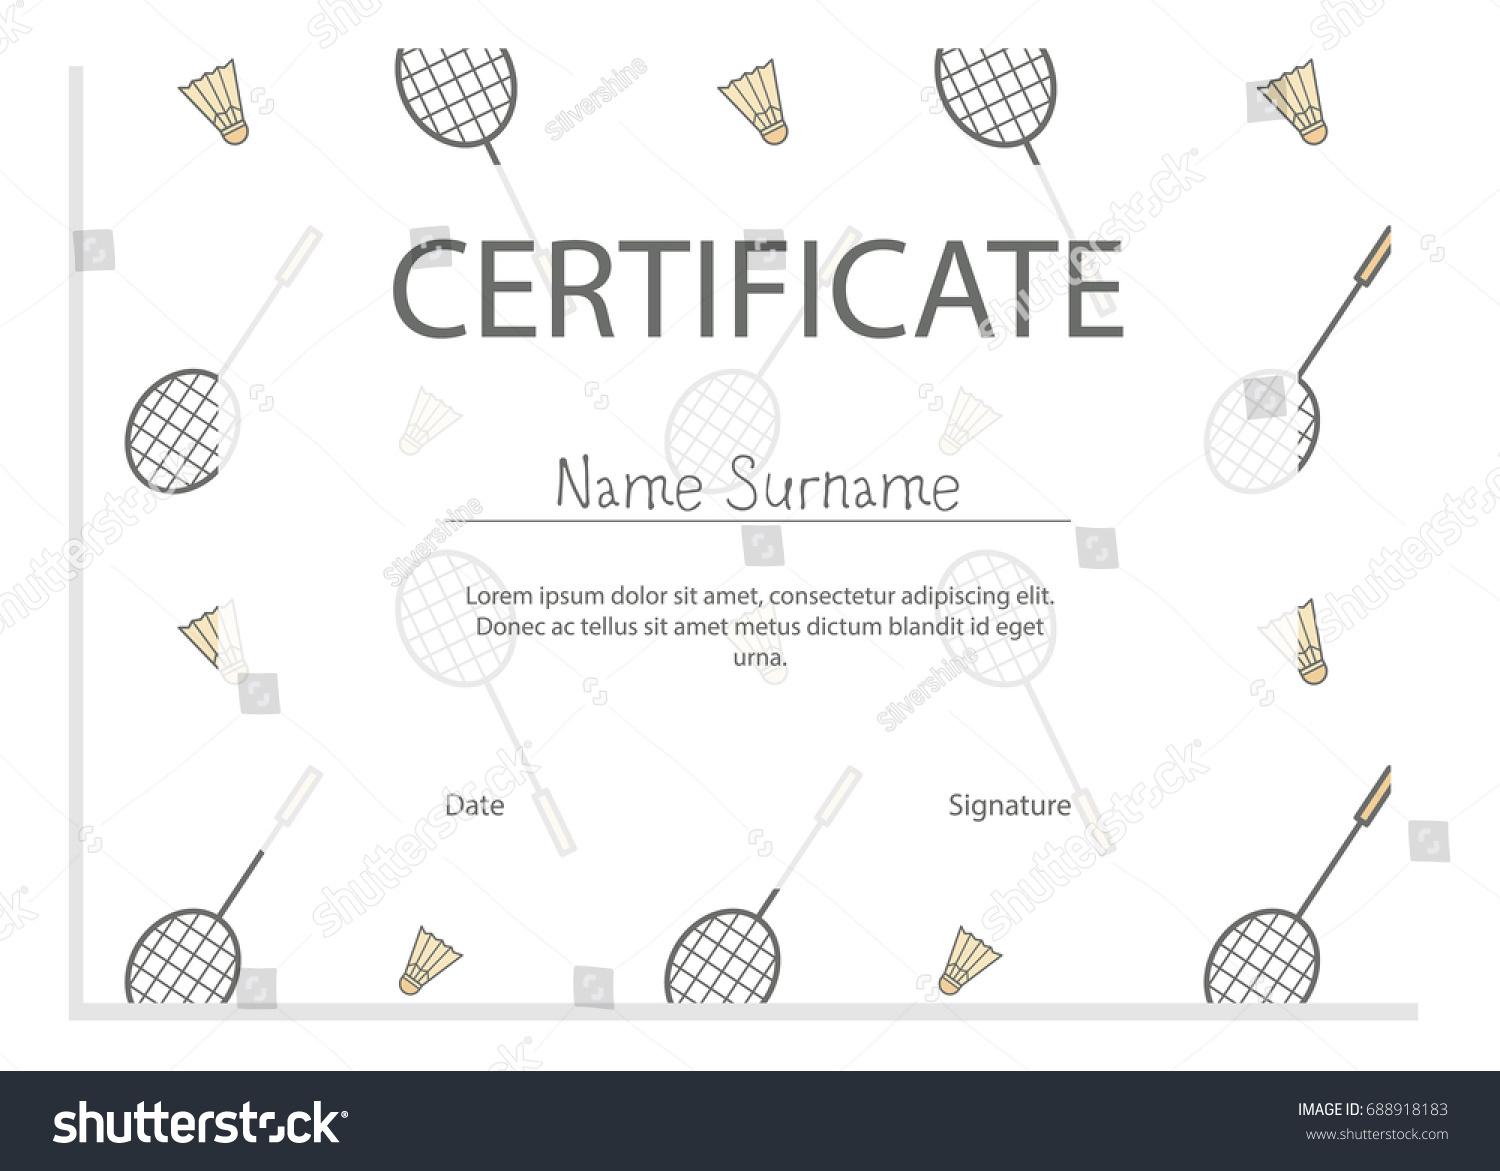 Certificate of appreciation badminton images certificate design badminton certificate template images templates example free xflitez Image collections